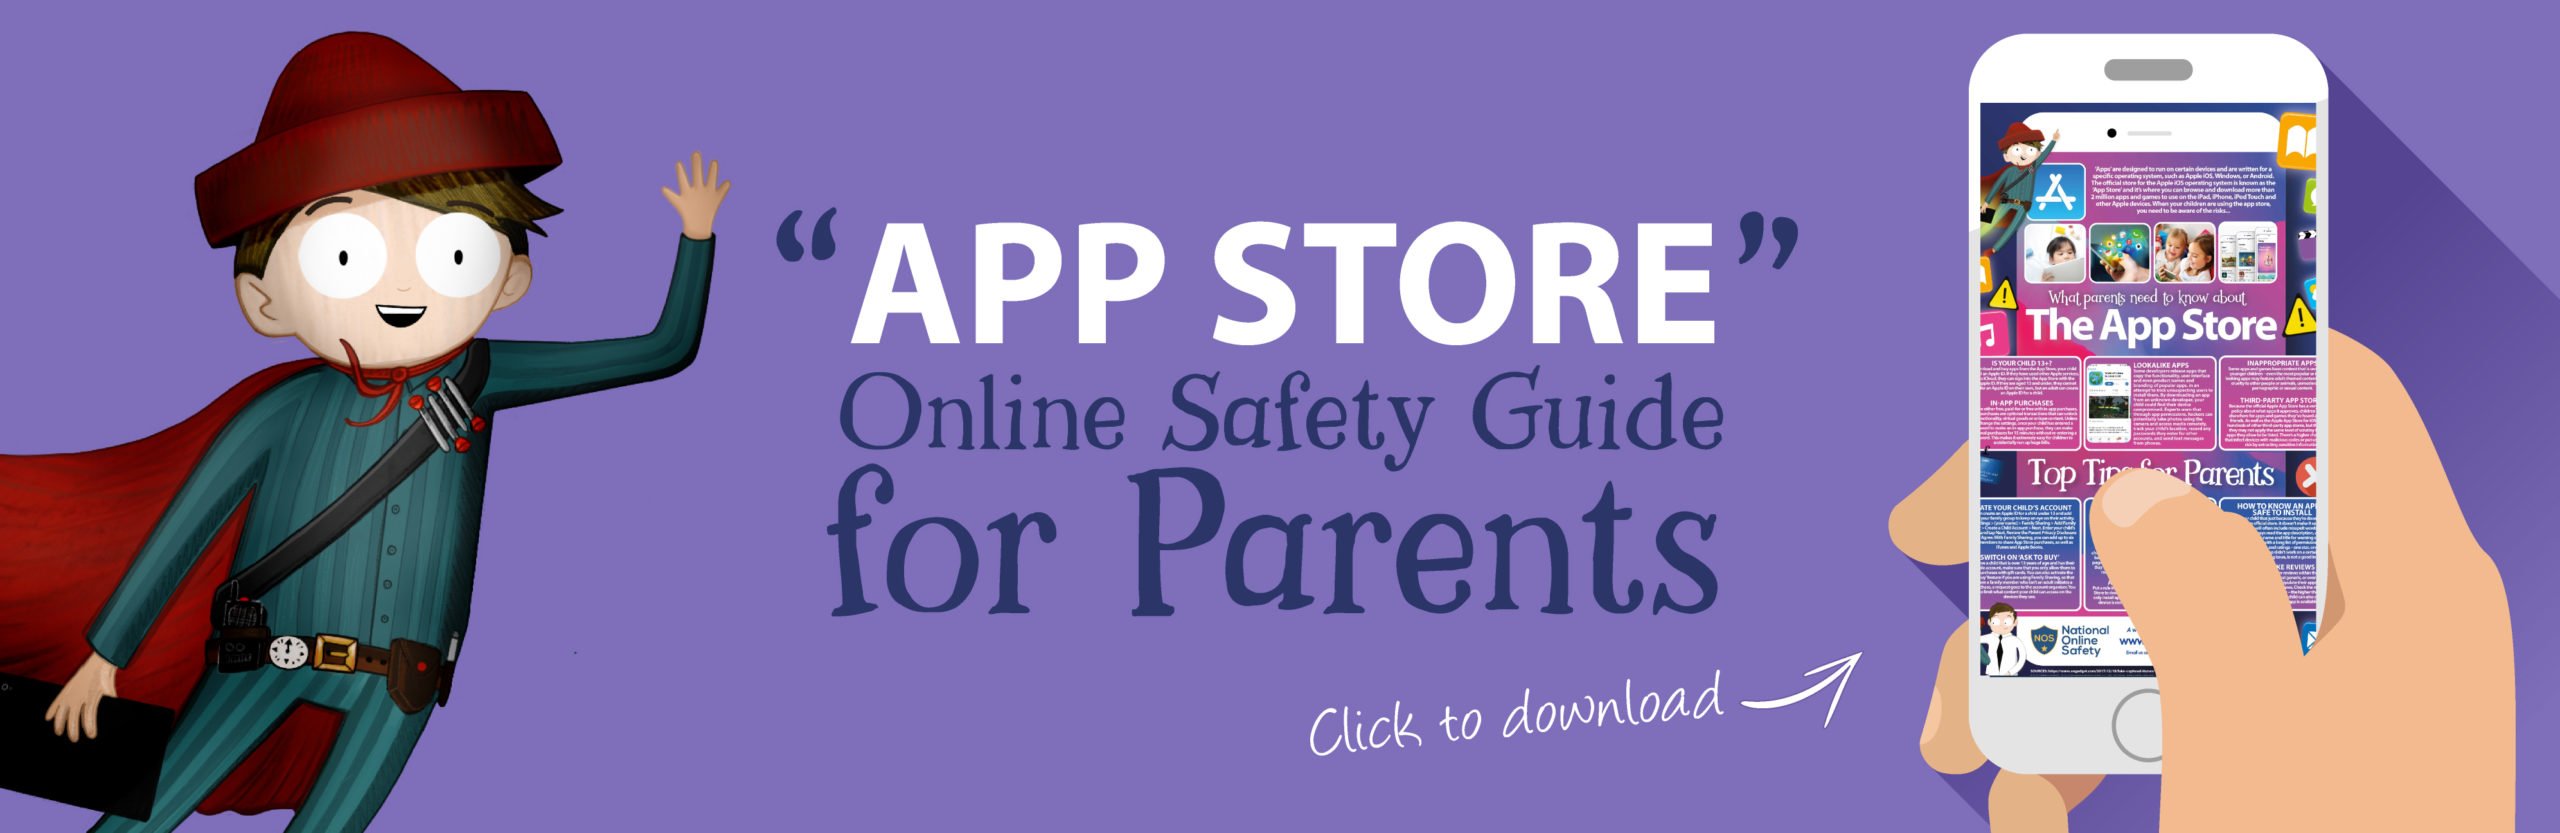 App-Store-Online-Safety-Parents-Guide-Web-Image-121118-v2